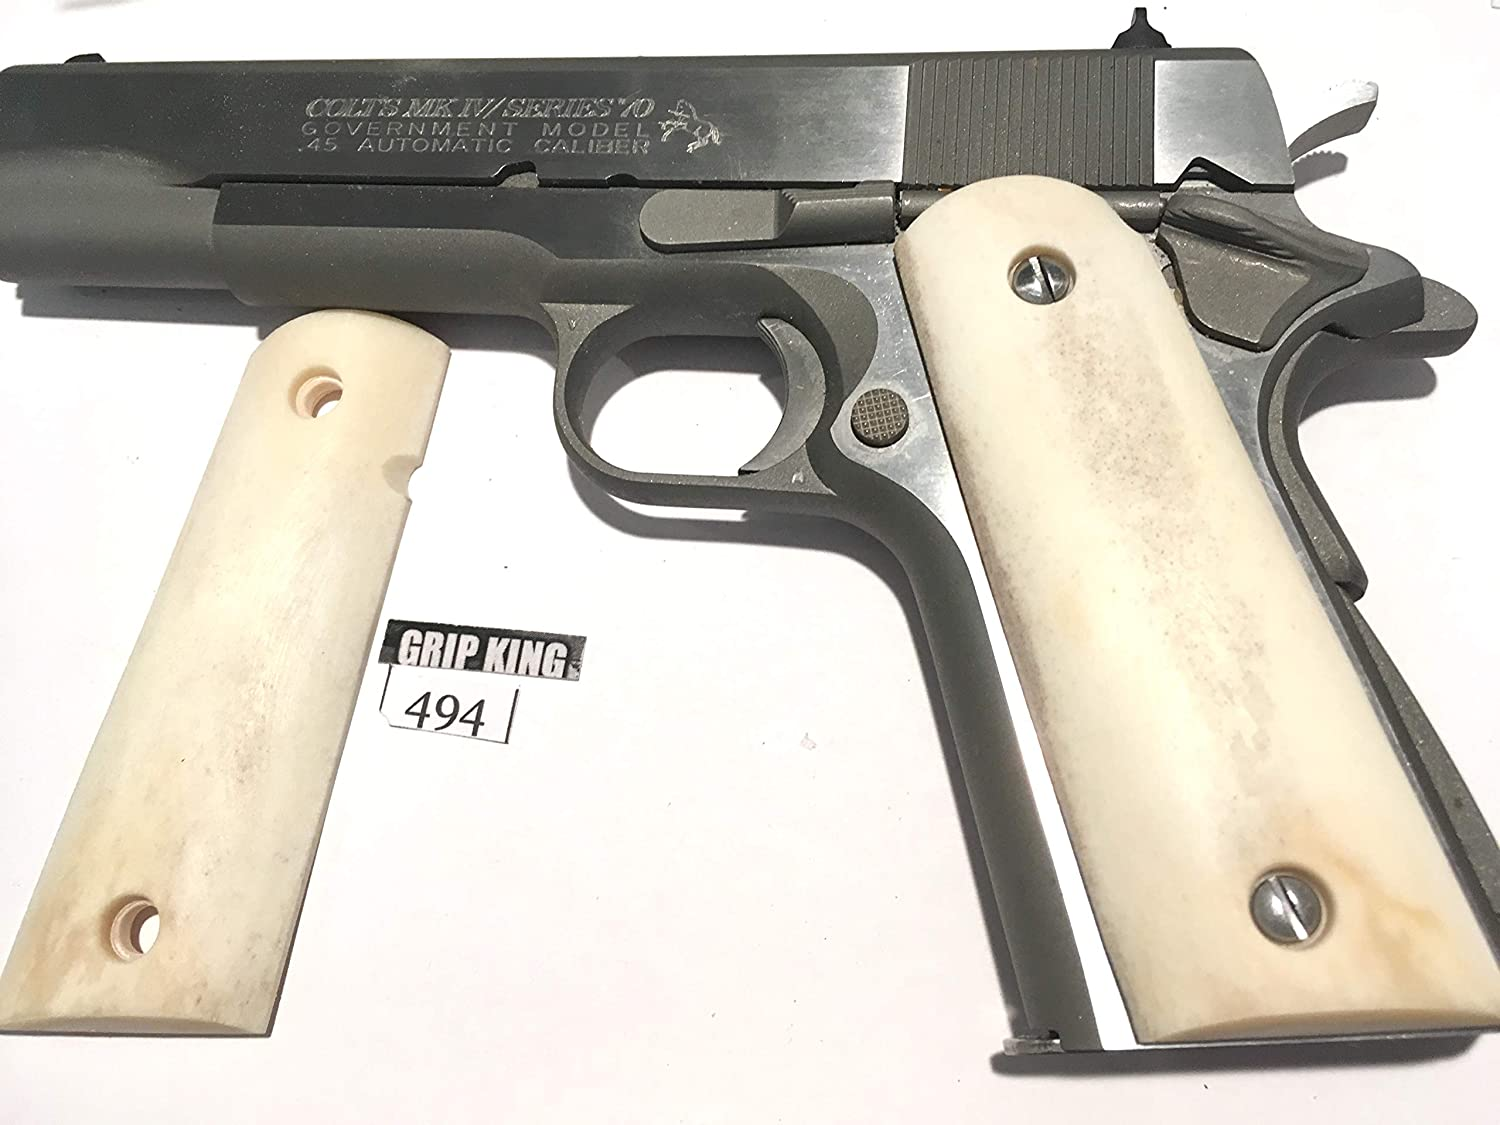 1911 GRIPS GENUINE BUFFALO BONE #494. FITS COLT,SIG,KIMBER,SPRINGFIELD,RUGER,TAURUS,REMINGTON,WILSON,R.I.,S & W, THOMPSON,ACE,ITHACA,CLONES. SALE $39.88